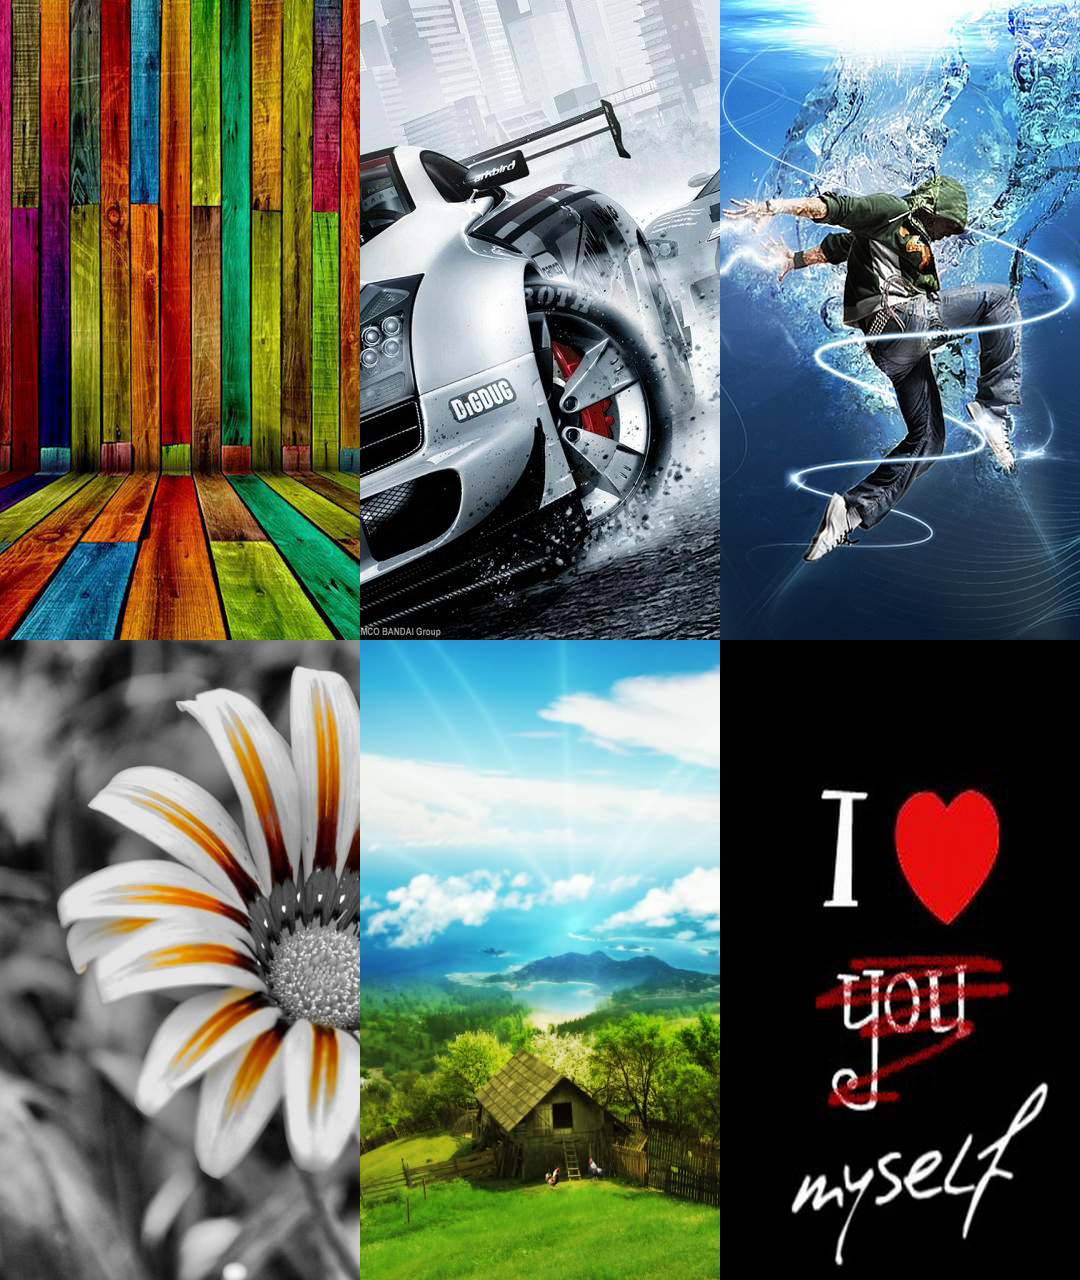 Hd wallpaper pack download - Http 2 Bp Blogspot Com W9nr3muejra Udiik3vpgpi 44 Hd Mobile Wallpapers Pack